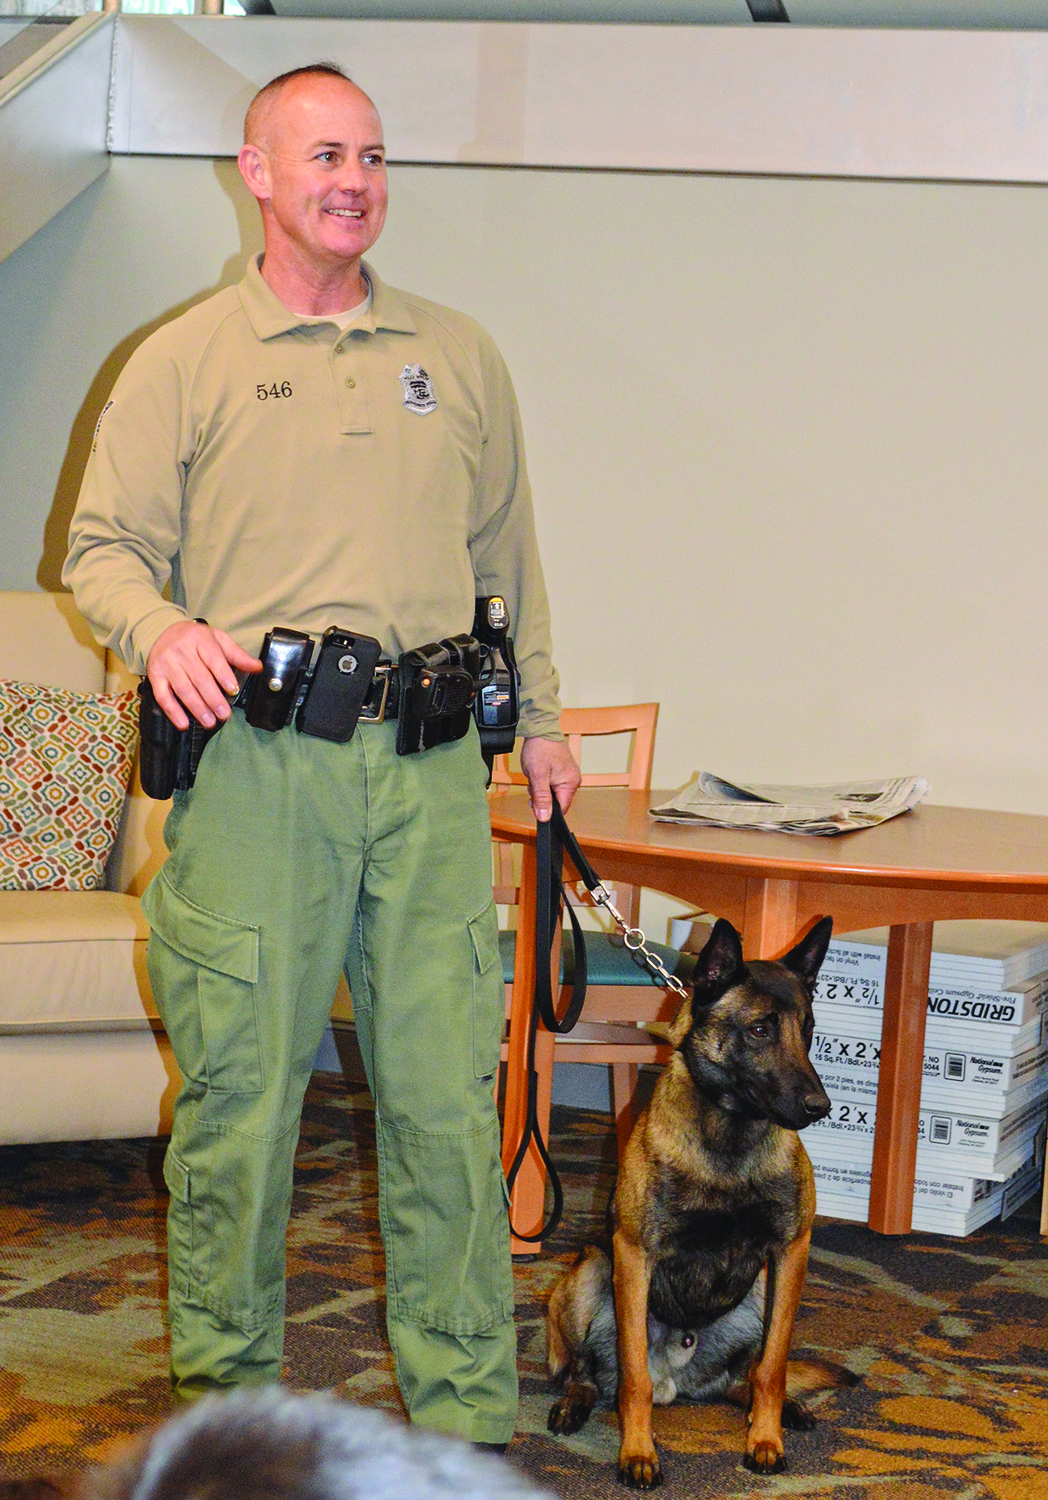 Patrolman Scott Keenan with EDOX at the JCC.